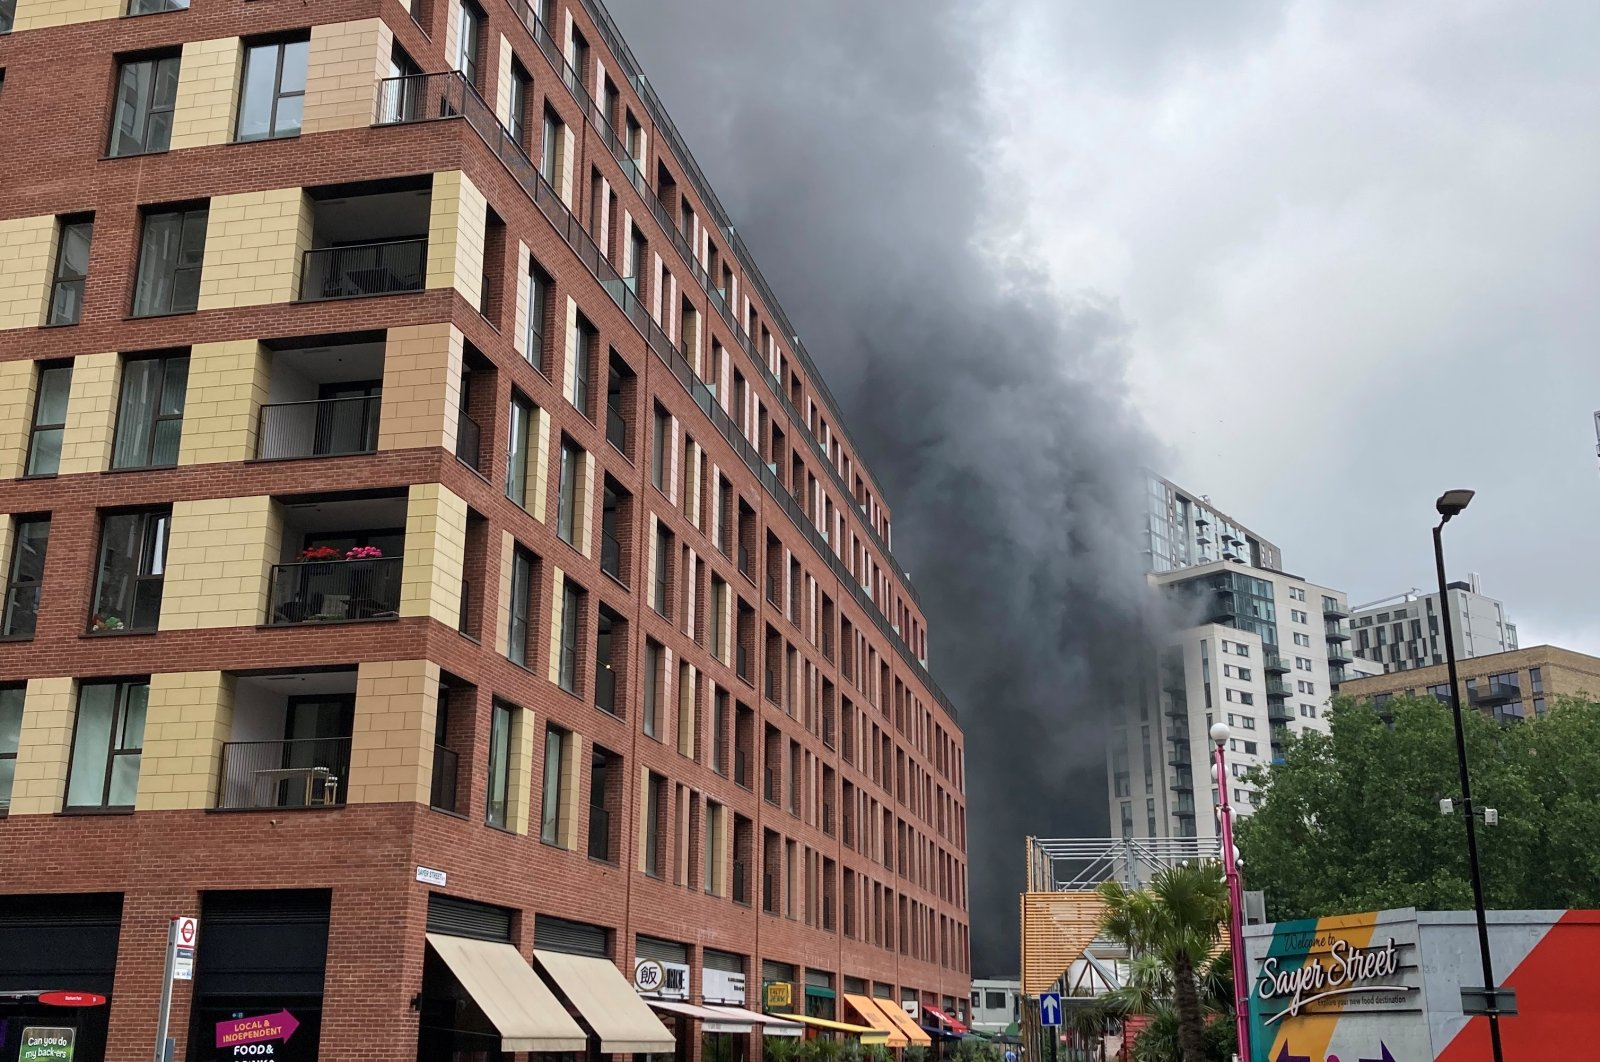 Smoke rises from the fire near Elephant and Castle station in London, Britain June 28, 2021 in this picture obtained from social media. (Social media/via Reuters)